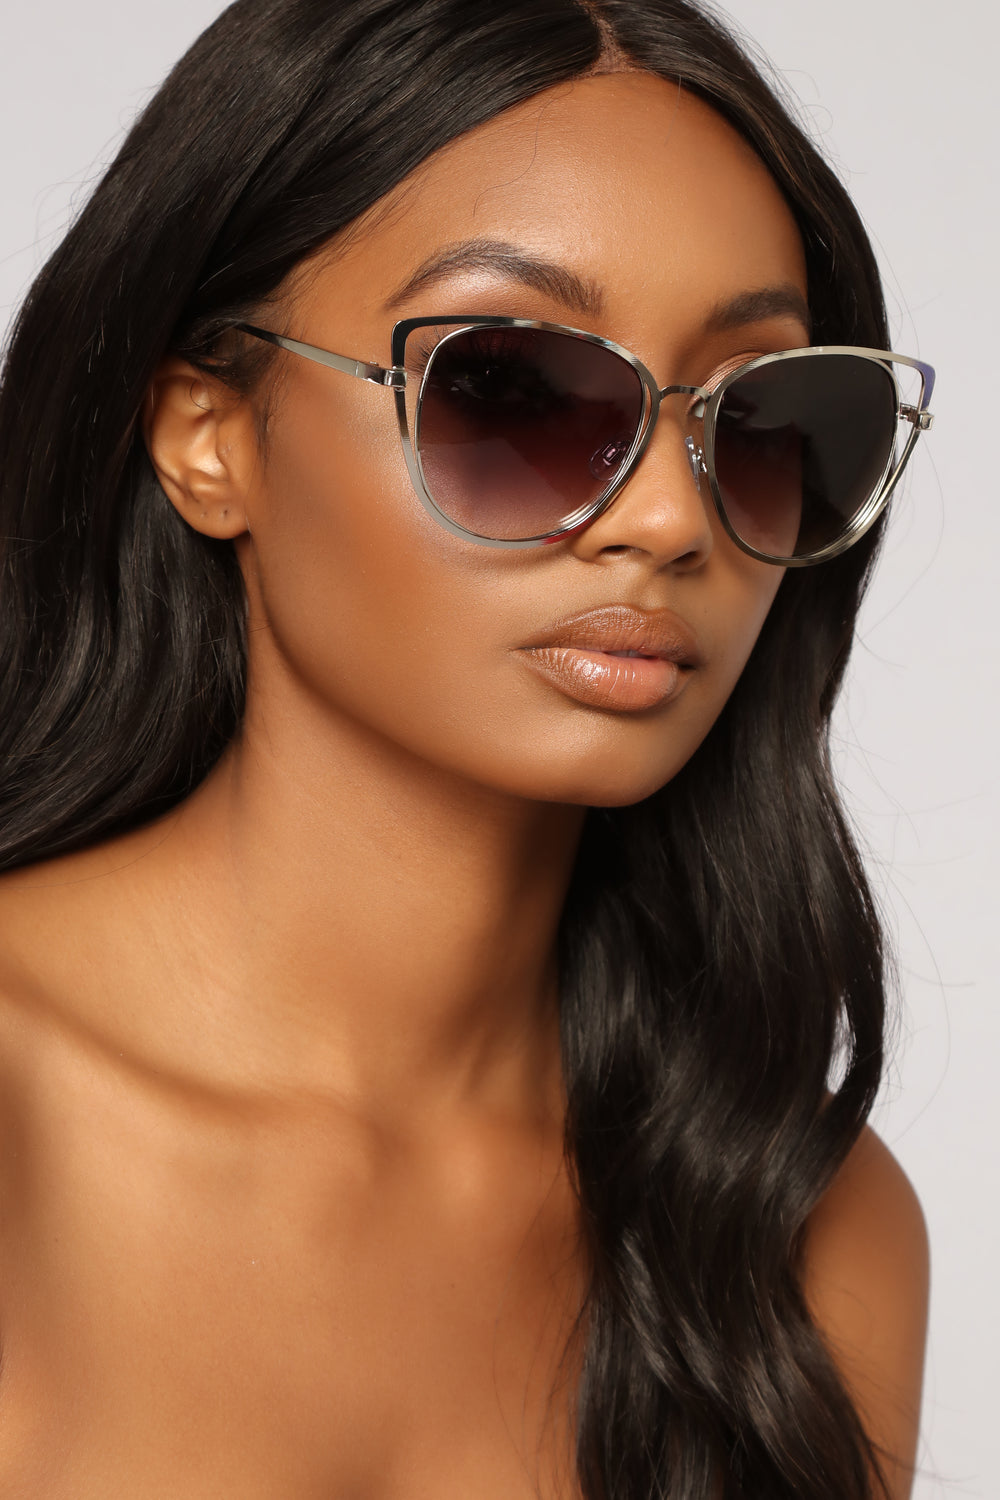 Sneak Up On You Sunglasses - Silver